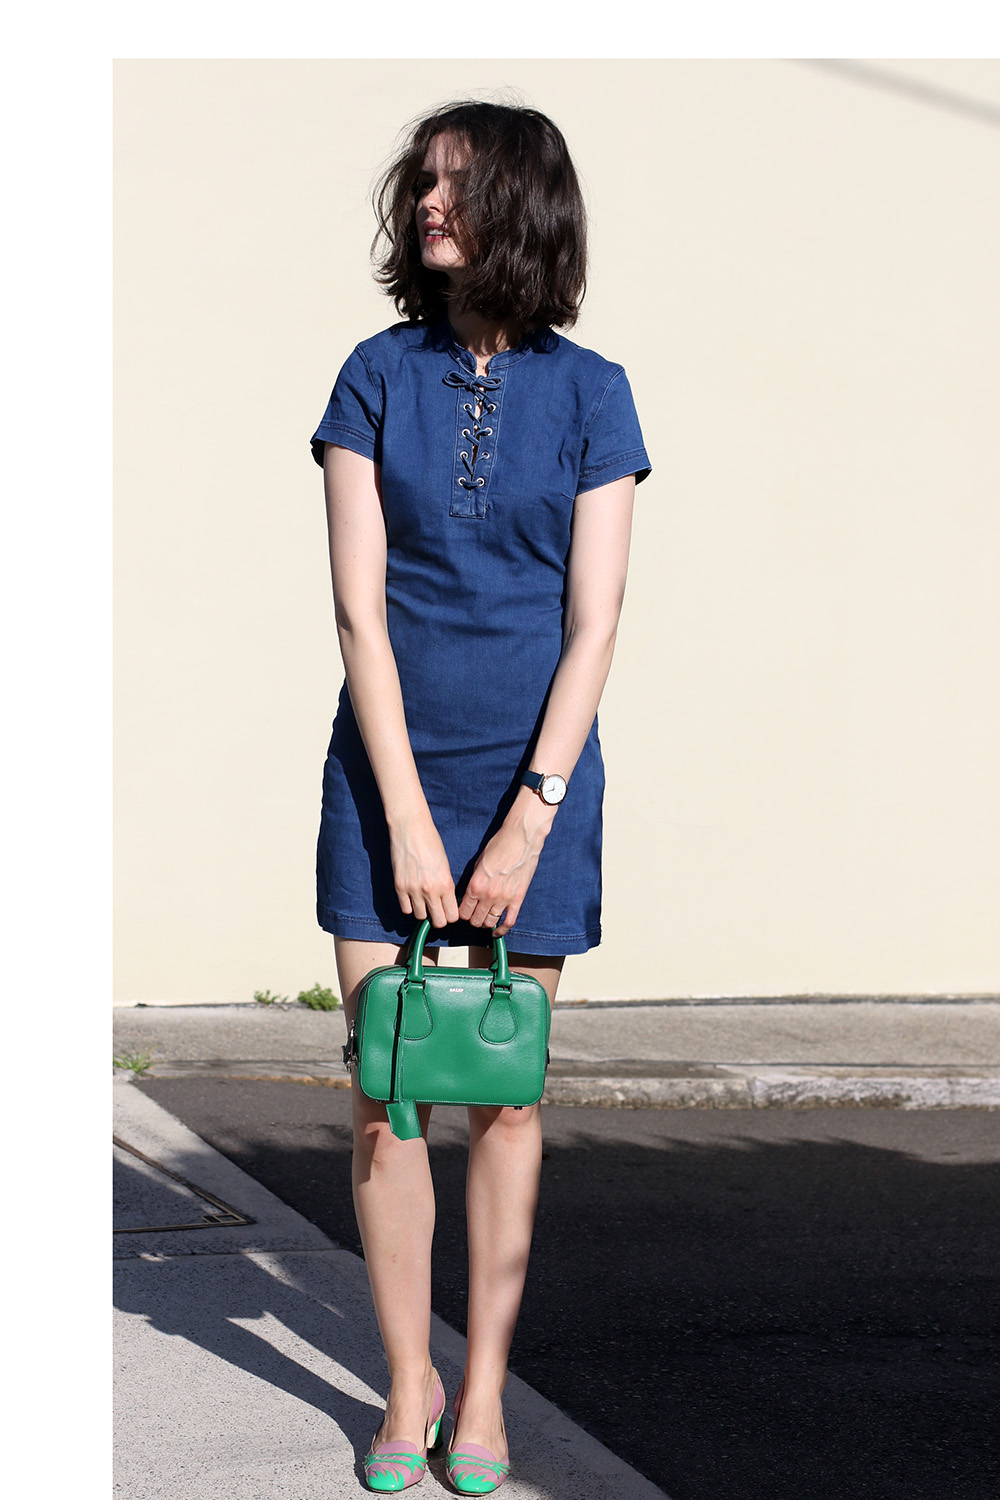 Chloe Hill wearing Misguided lace up denim dress, Bally green mini top handle bag, Bottega Veneta pink and green shoes in Sydney